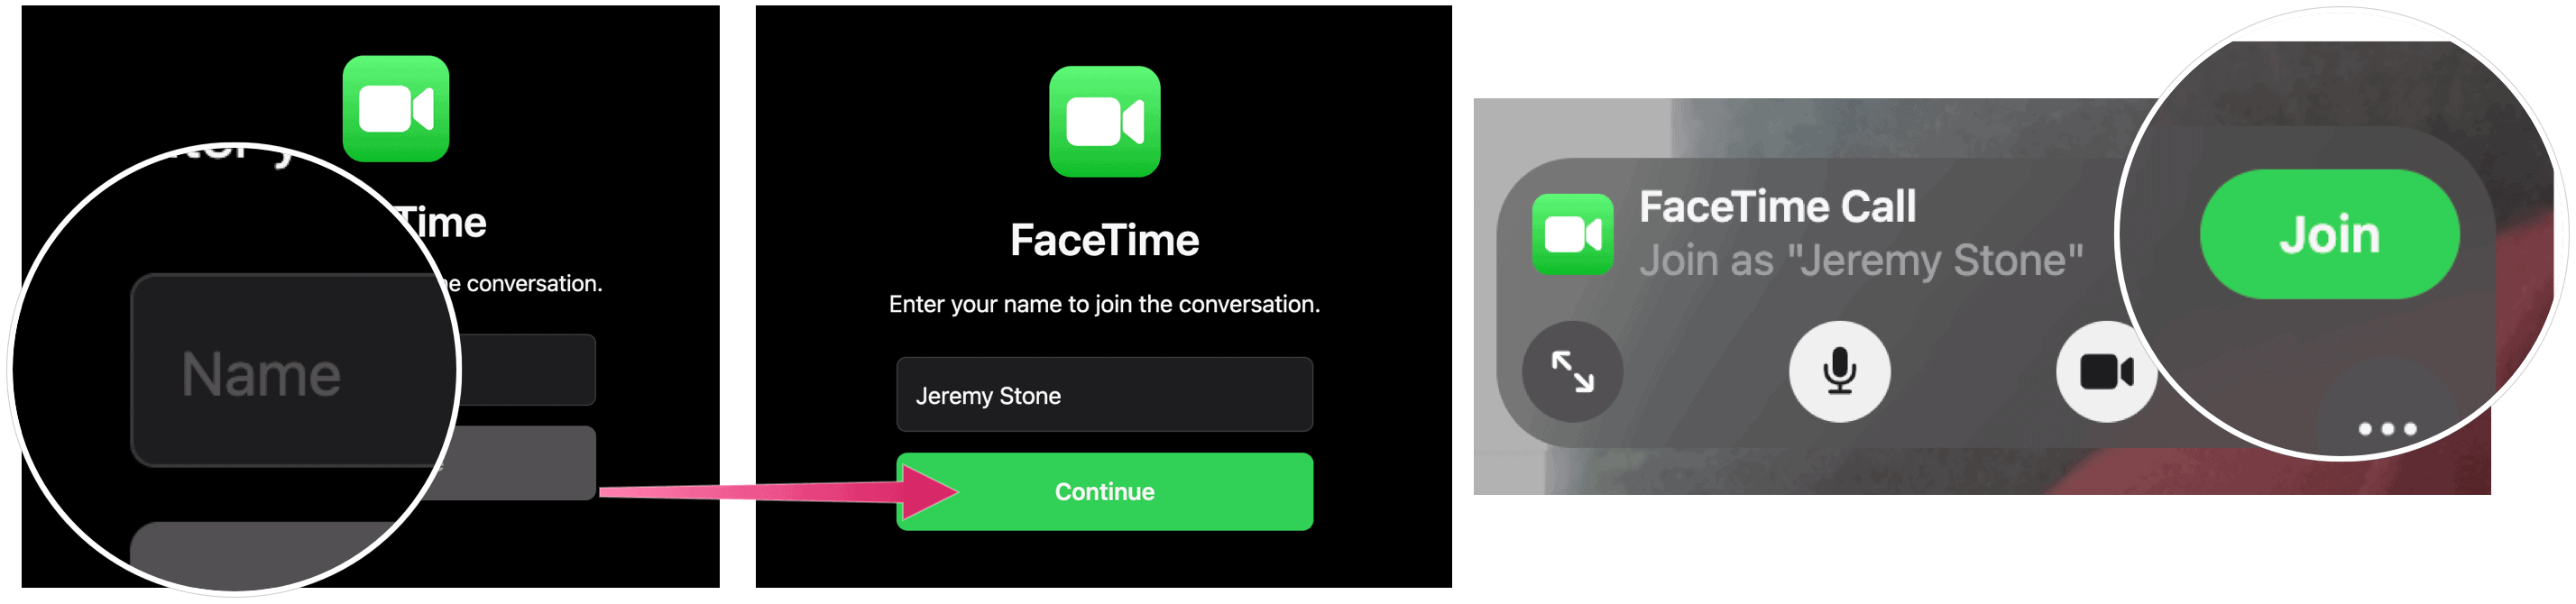 Join FaceTime group